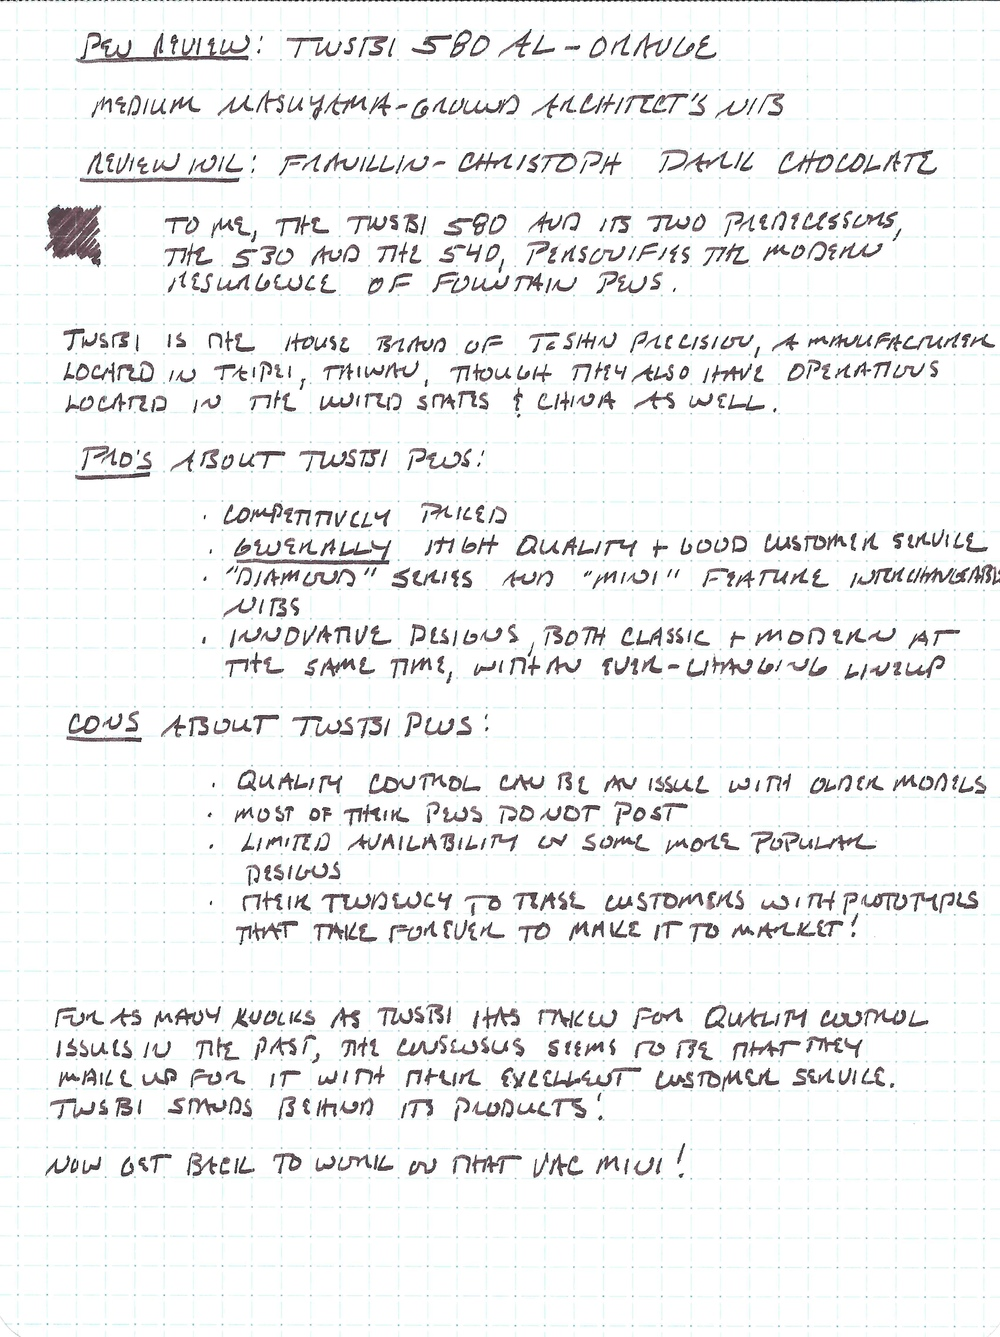 TWSBI Writing Sample.jpg